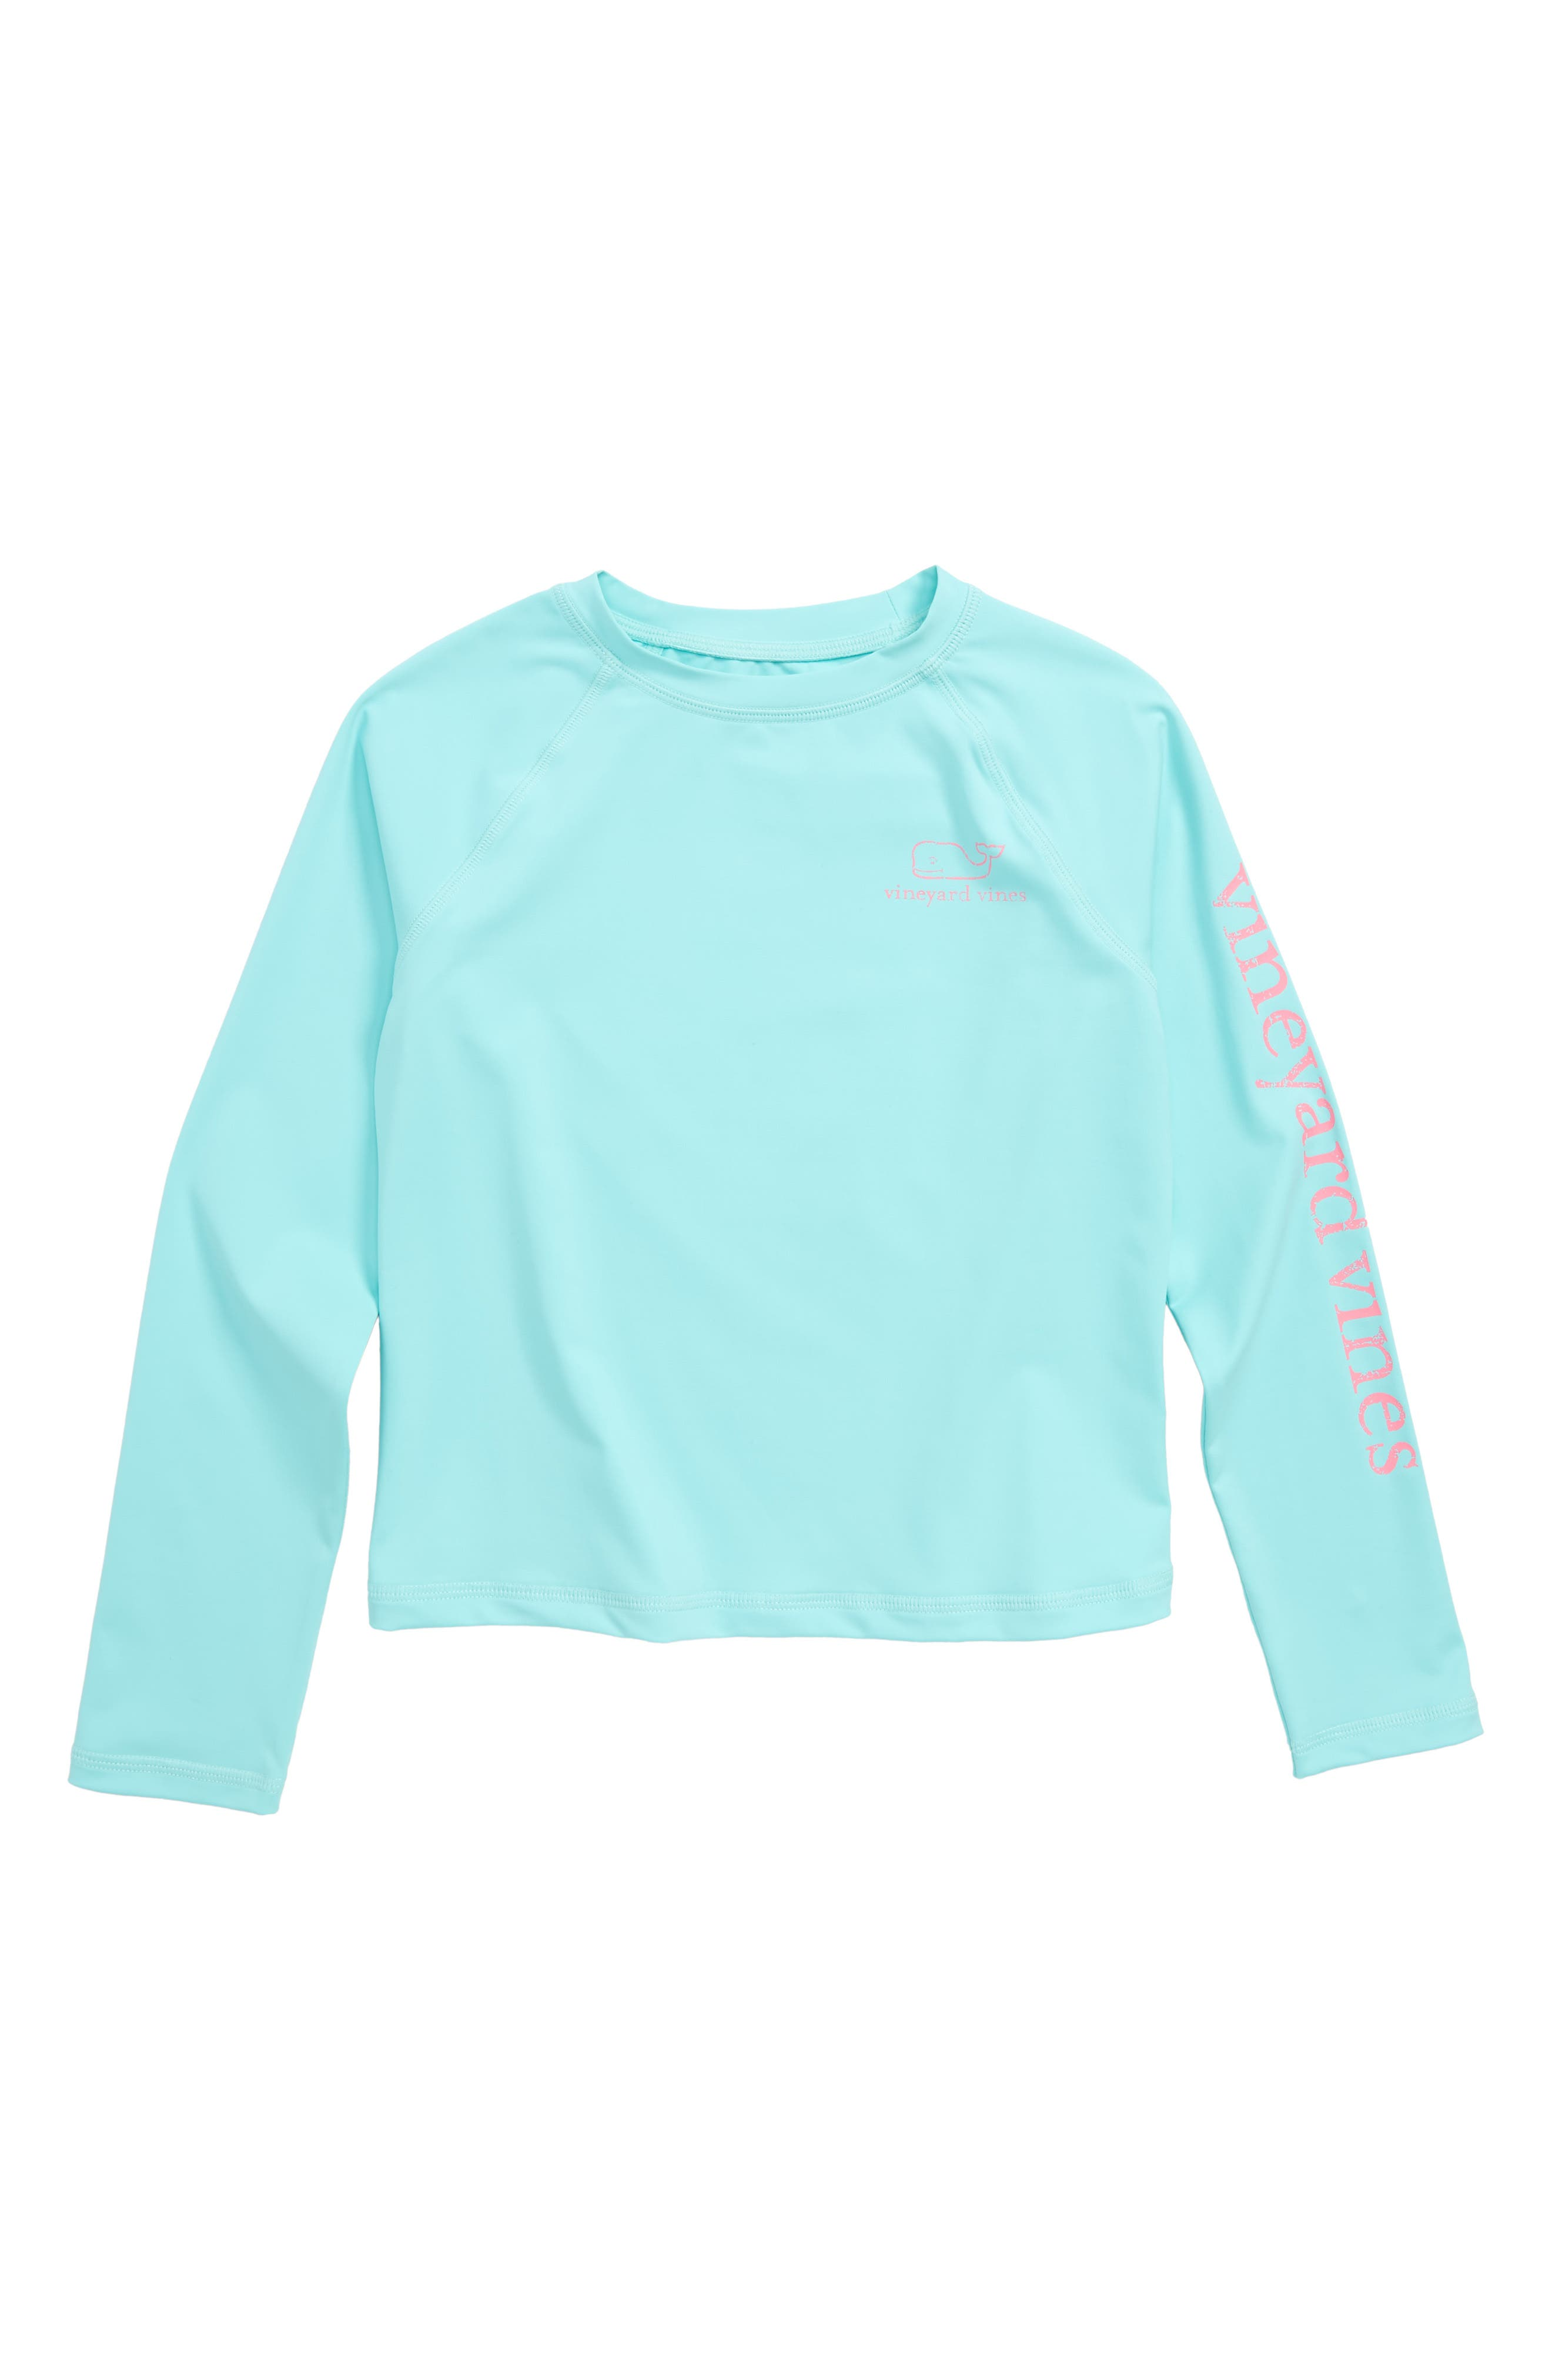 vineyard vines Vintage Whale Long Sleeve Rashguard (Toddler Girls, Little Girls & Big Girls)